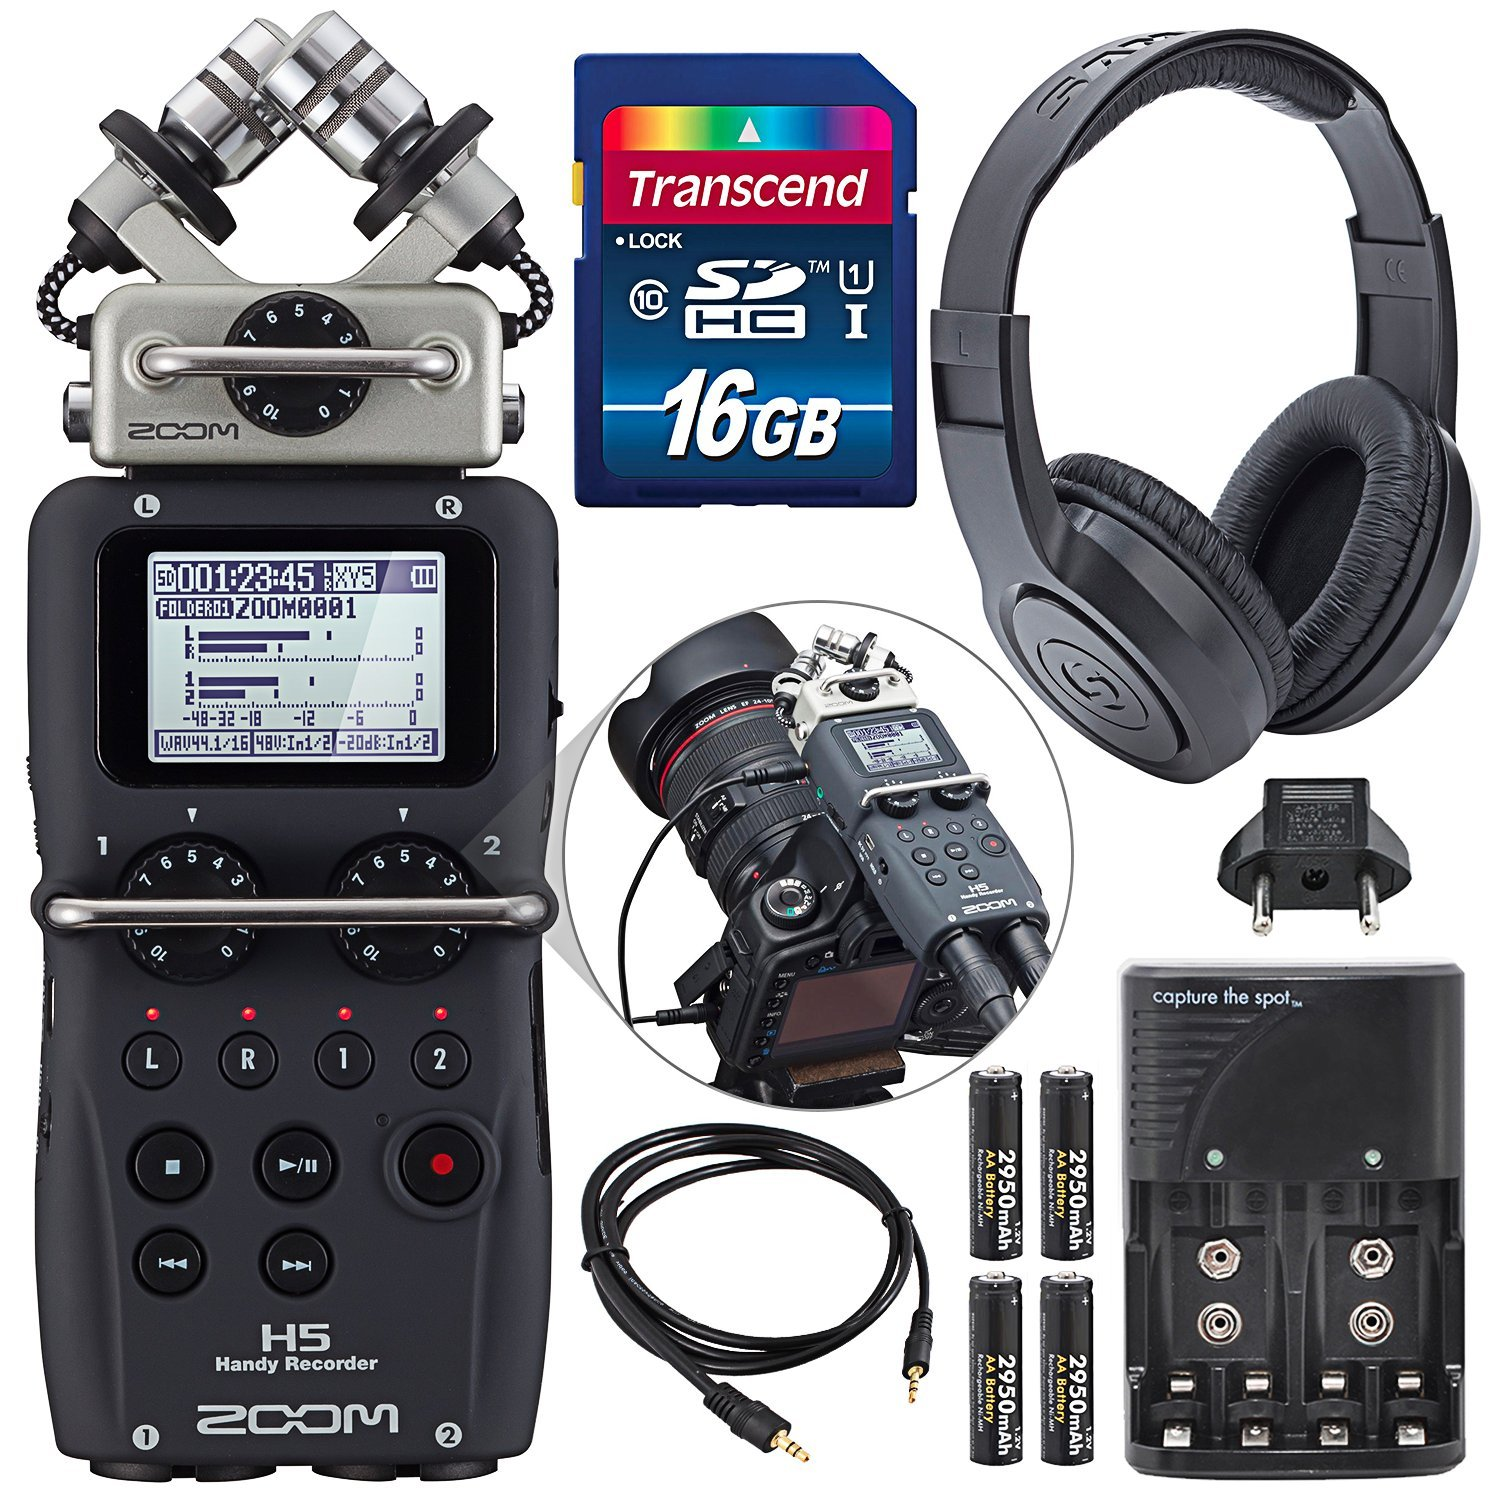 Zoom H5 Four-Track Portable Recorder with Interchangeable Microphone System Including Samson Studio Headphones and Deluxe Accessory Bundle